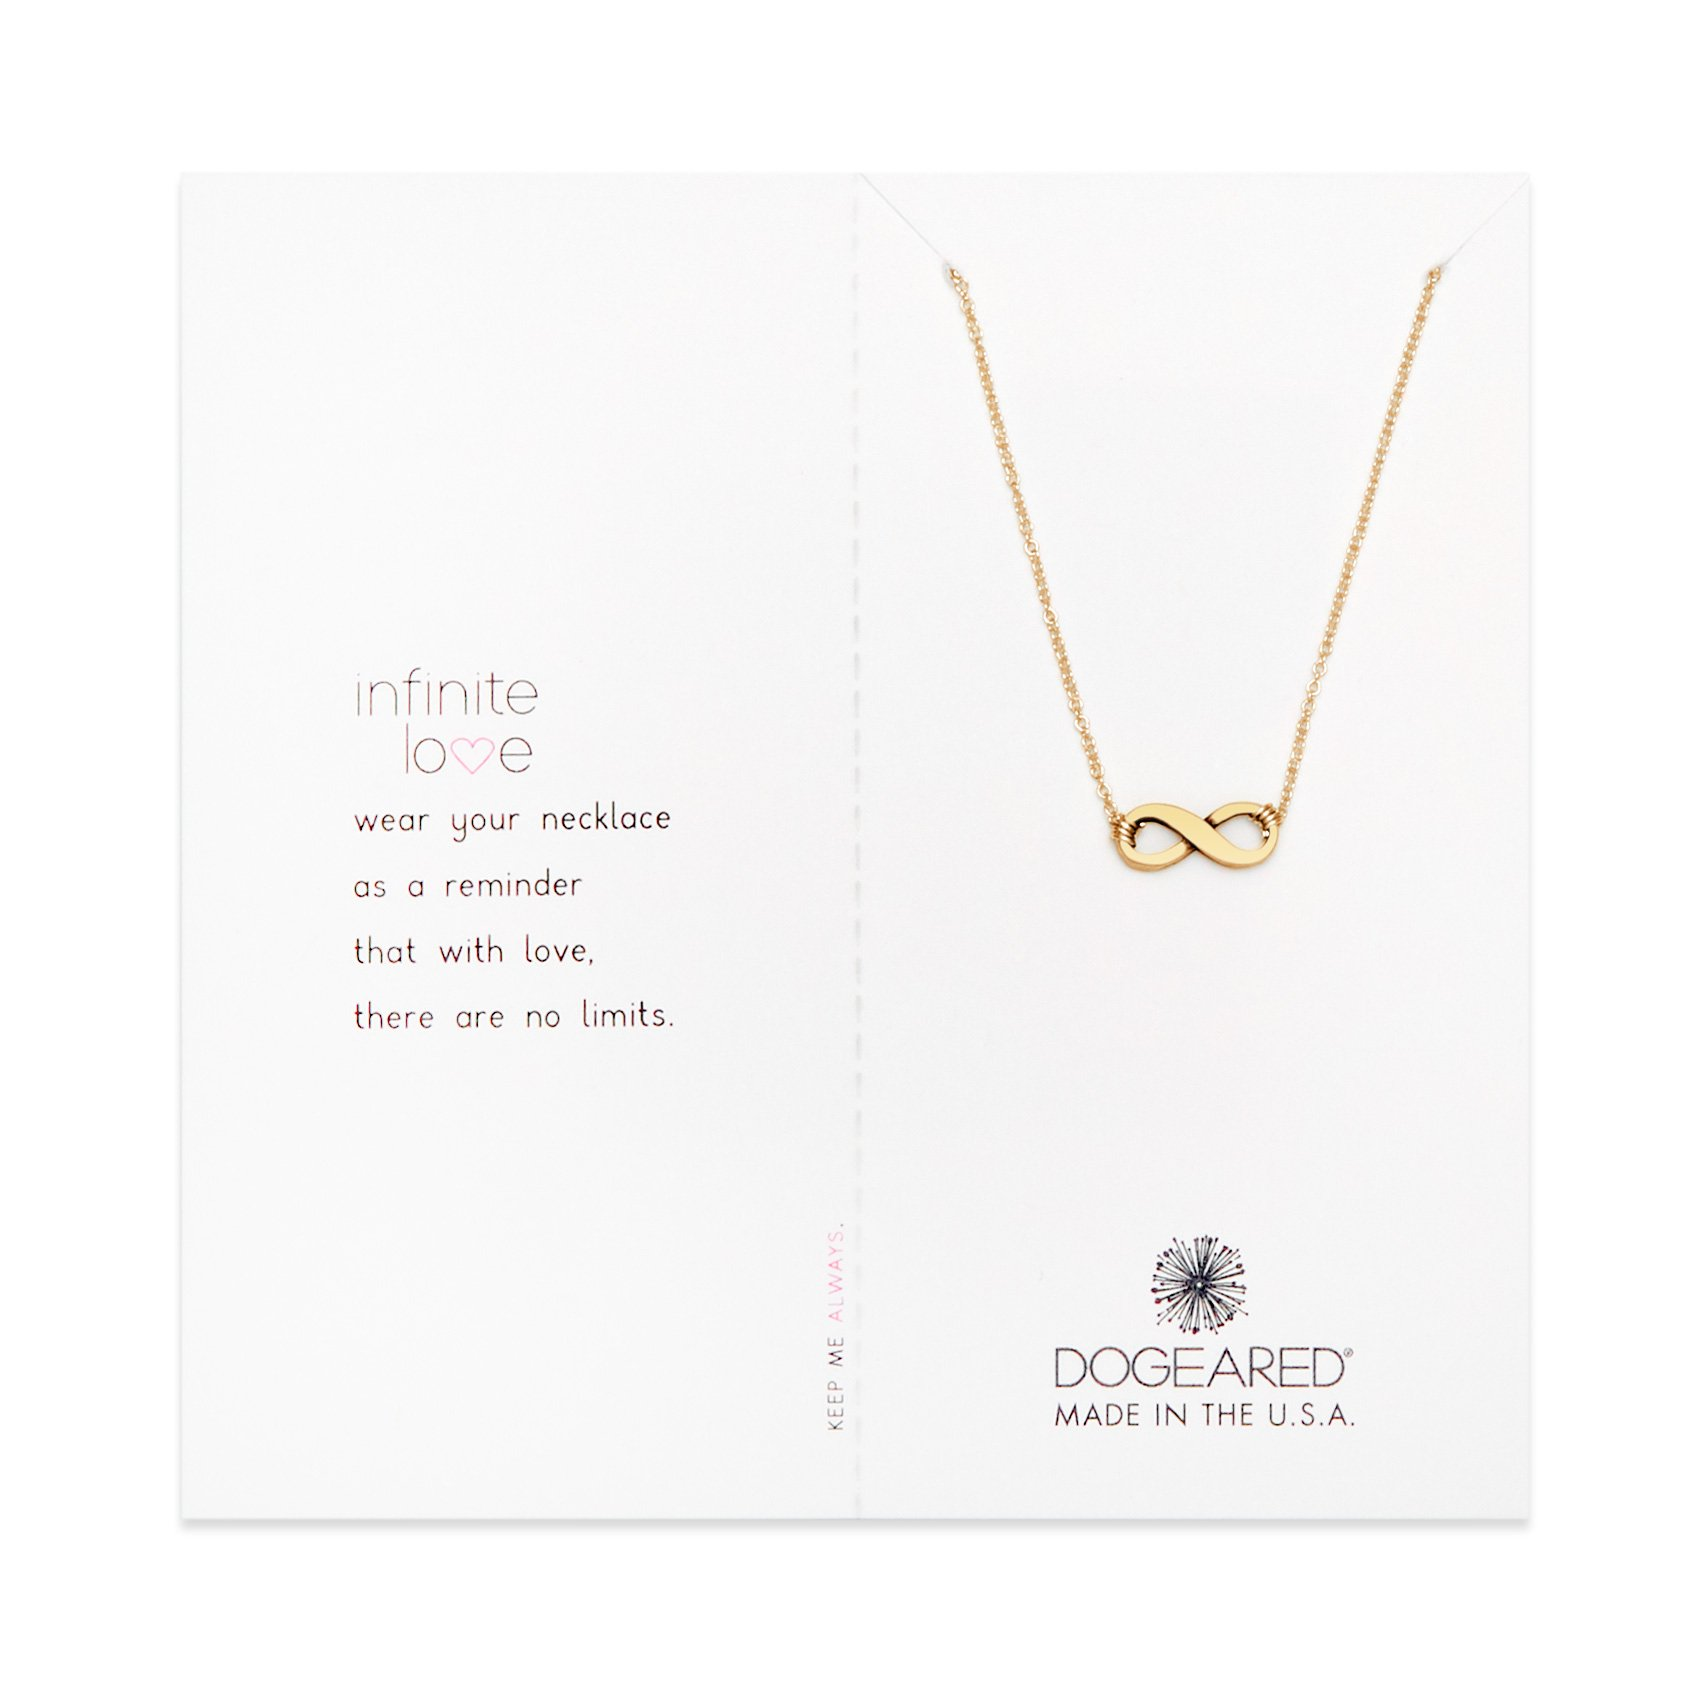 Dogeared Infinite Love Necklace, Gold Dipped